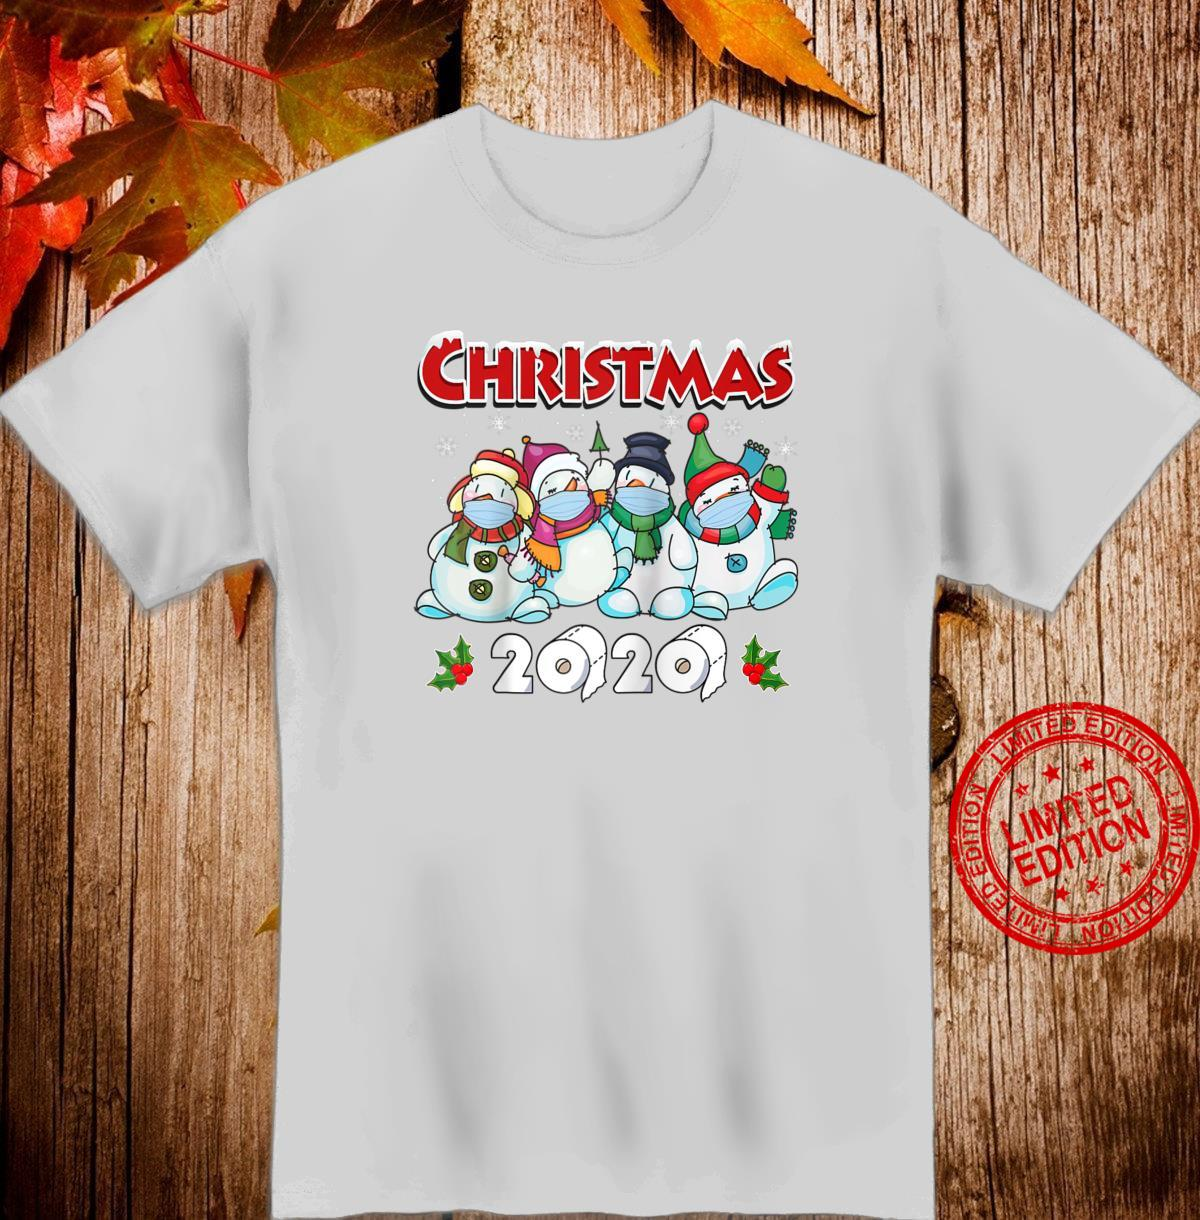 Merry Christmas 2020 Snowman in Mask Pajama snowflakes Xmas Shirt